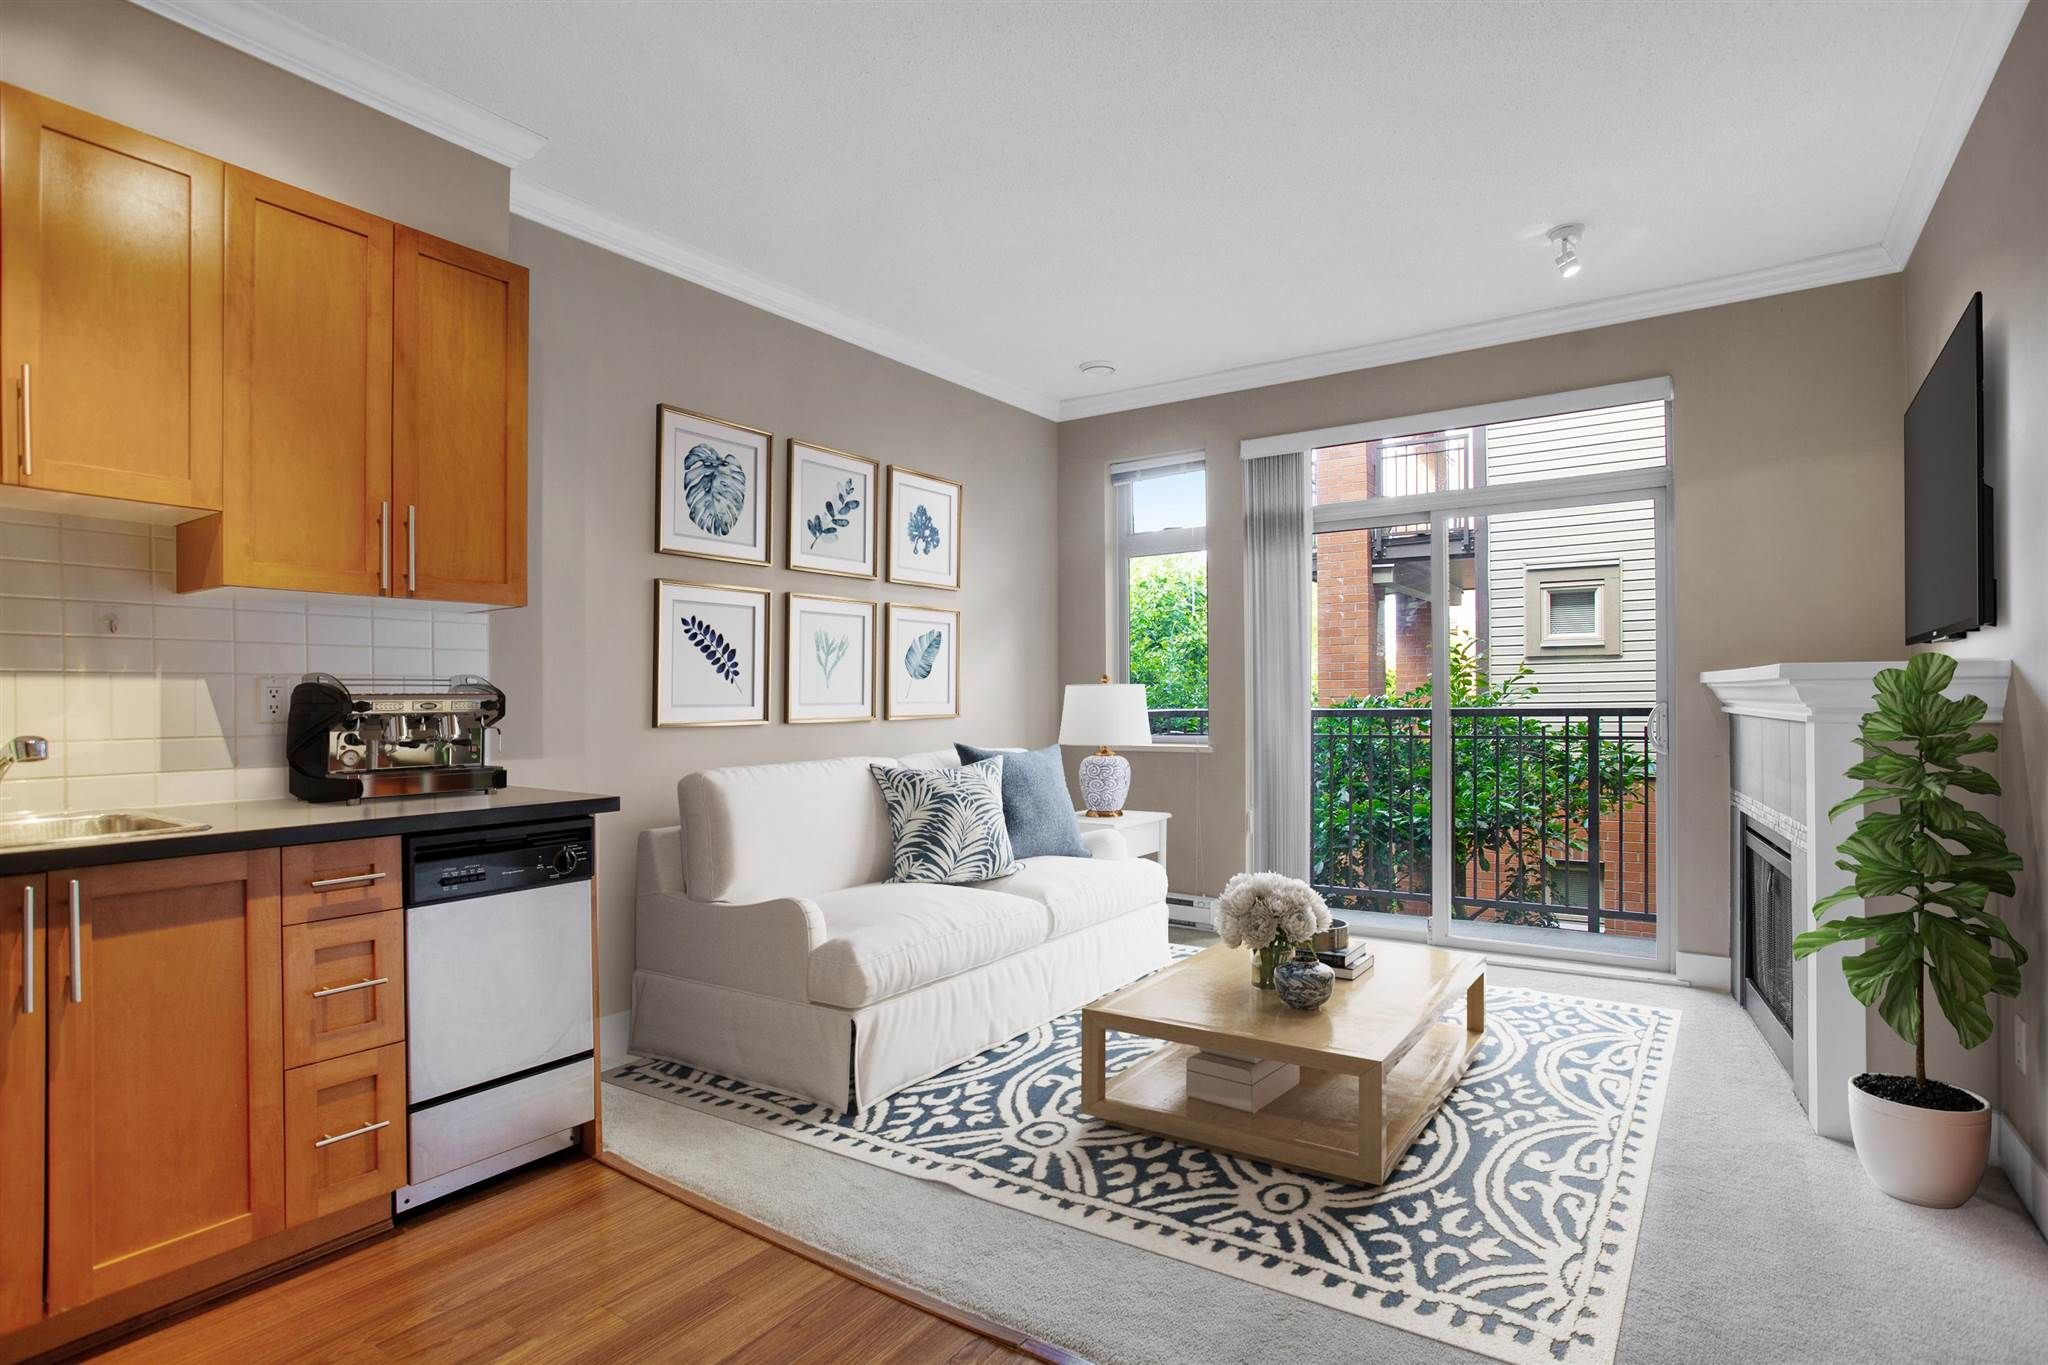 """Main Photo: 221 2250 WESBROOK Mall in Vancouver: University VW Condo for sale in """"Chaucer Hall"""" (Vancouver West)  : MLS®# R2594557"""